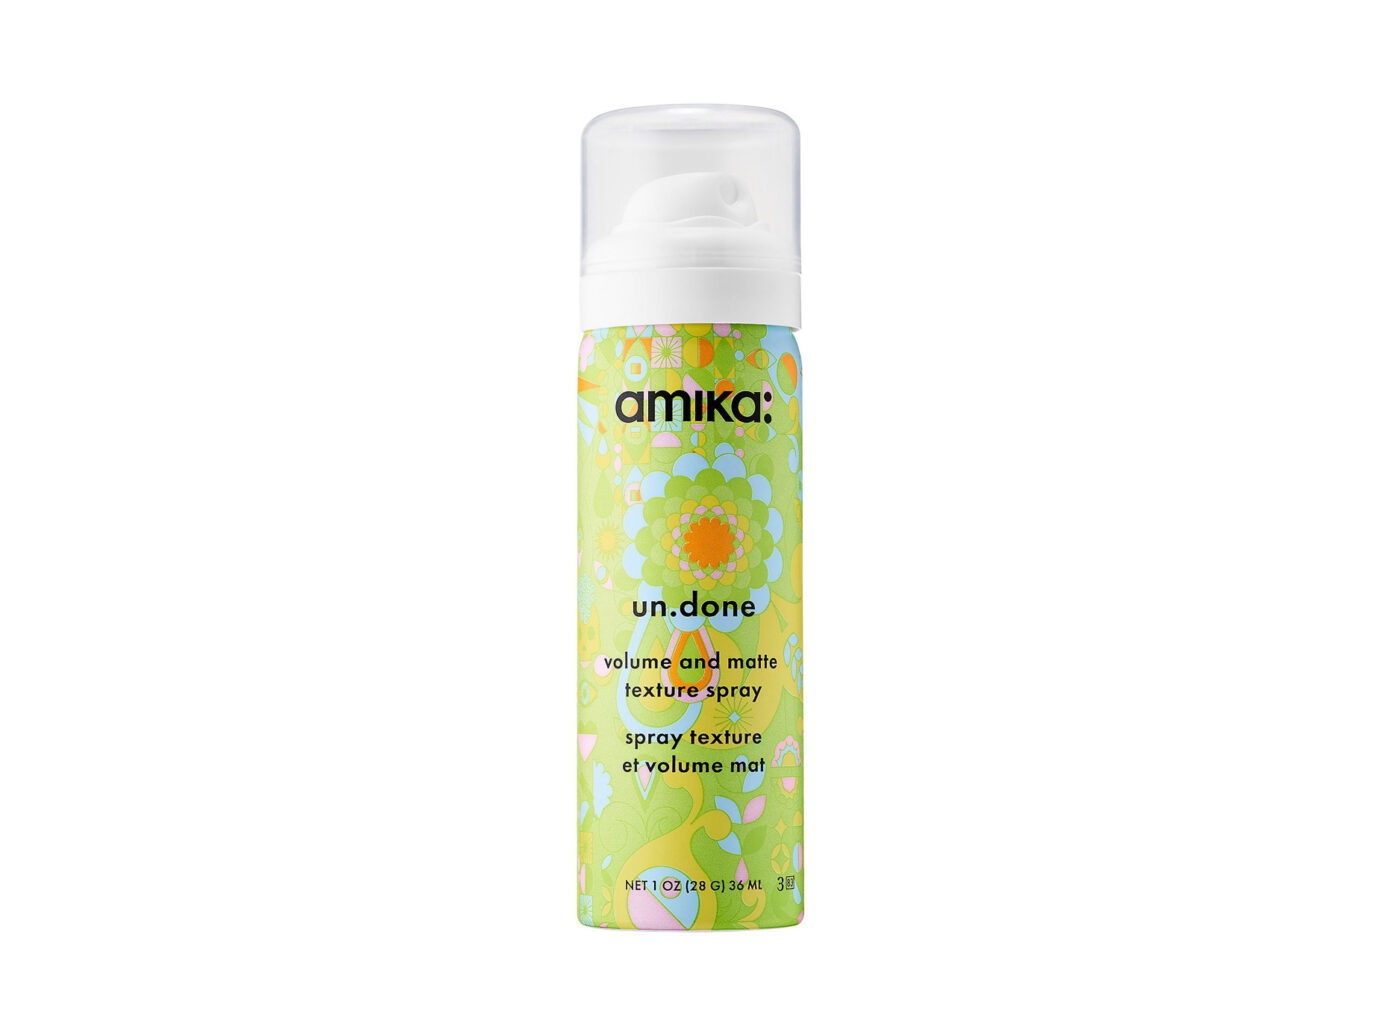 Amika Un.Done Volume and Matte Texture Spray